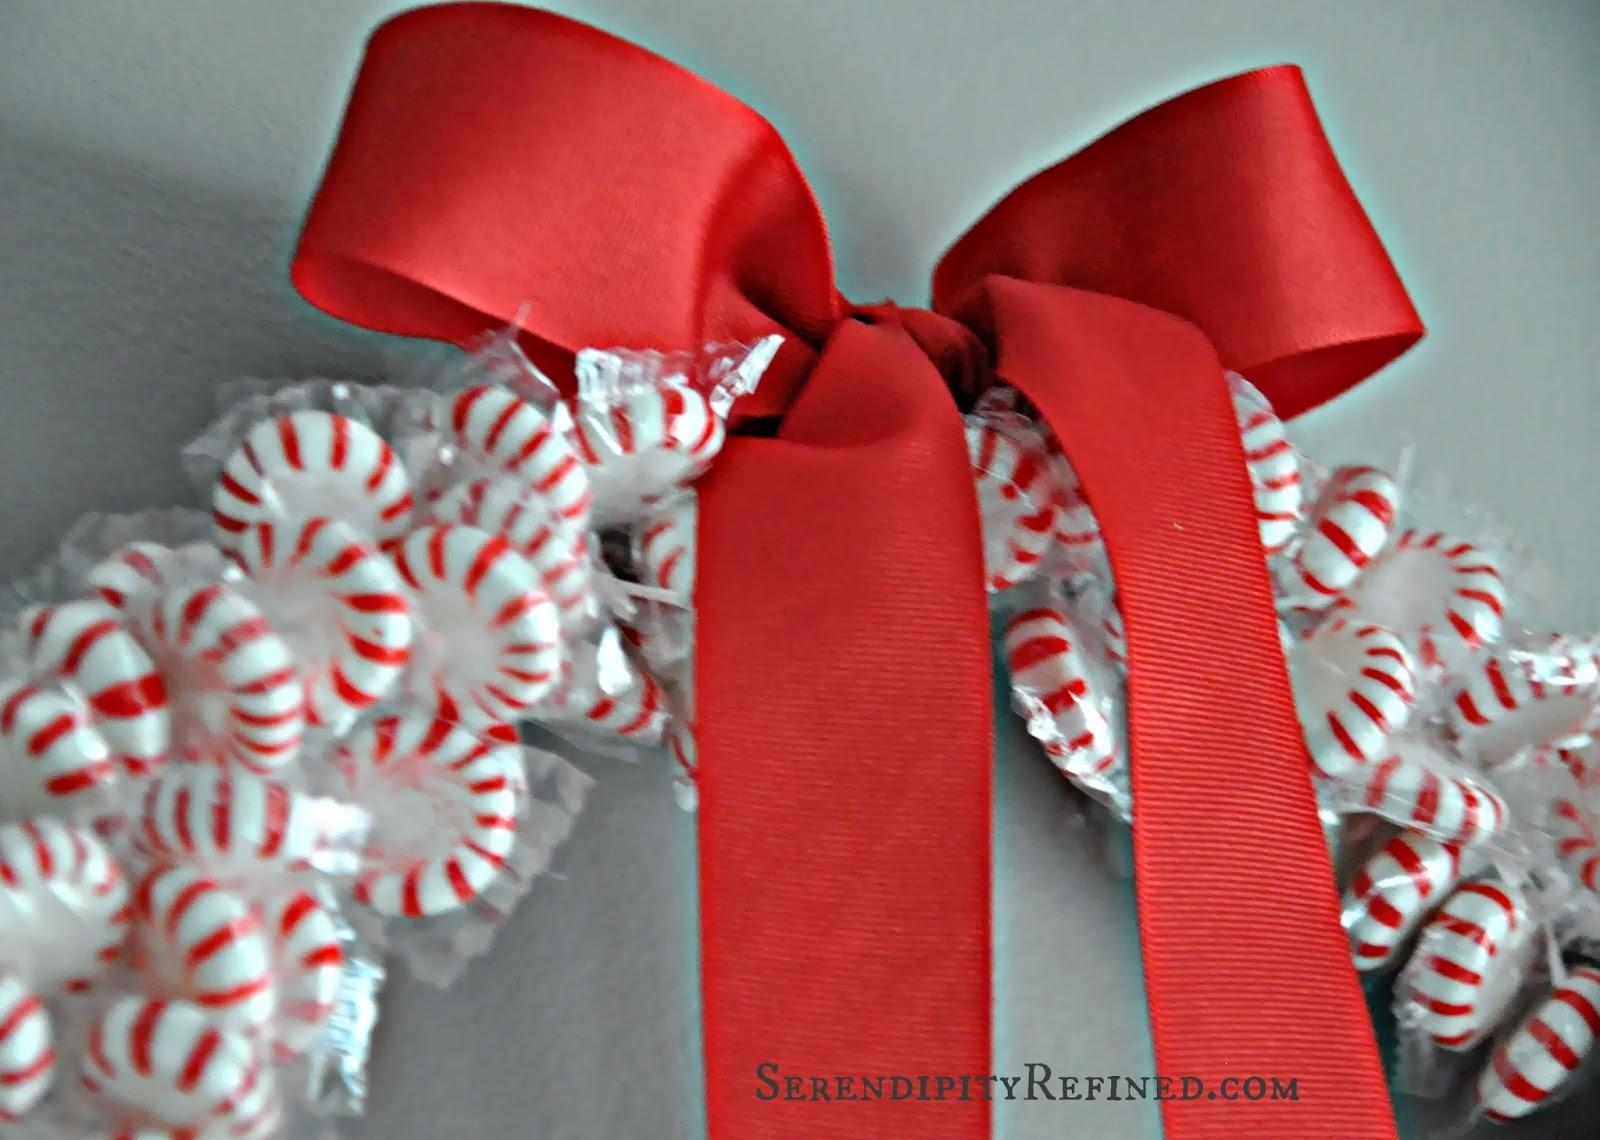 Serendipity Refined Blog Diy Holiday Peppermint Wreath